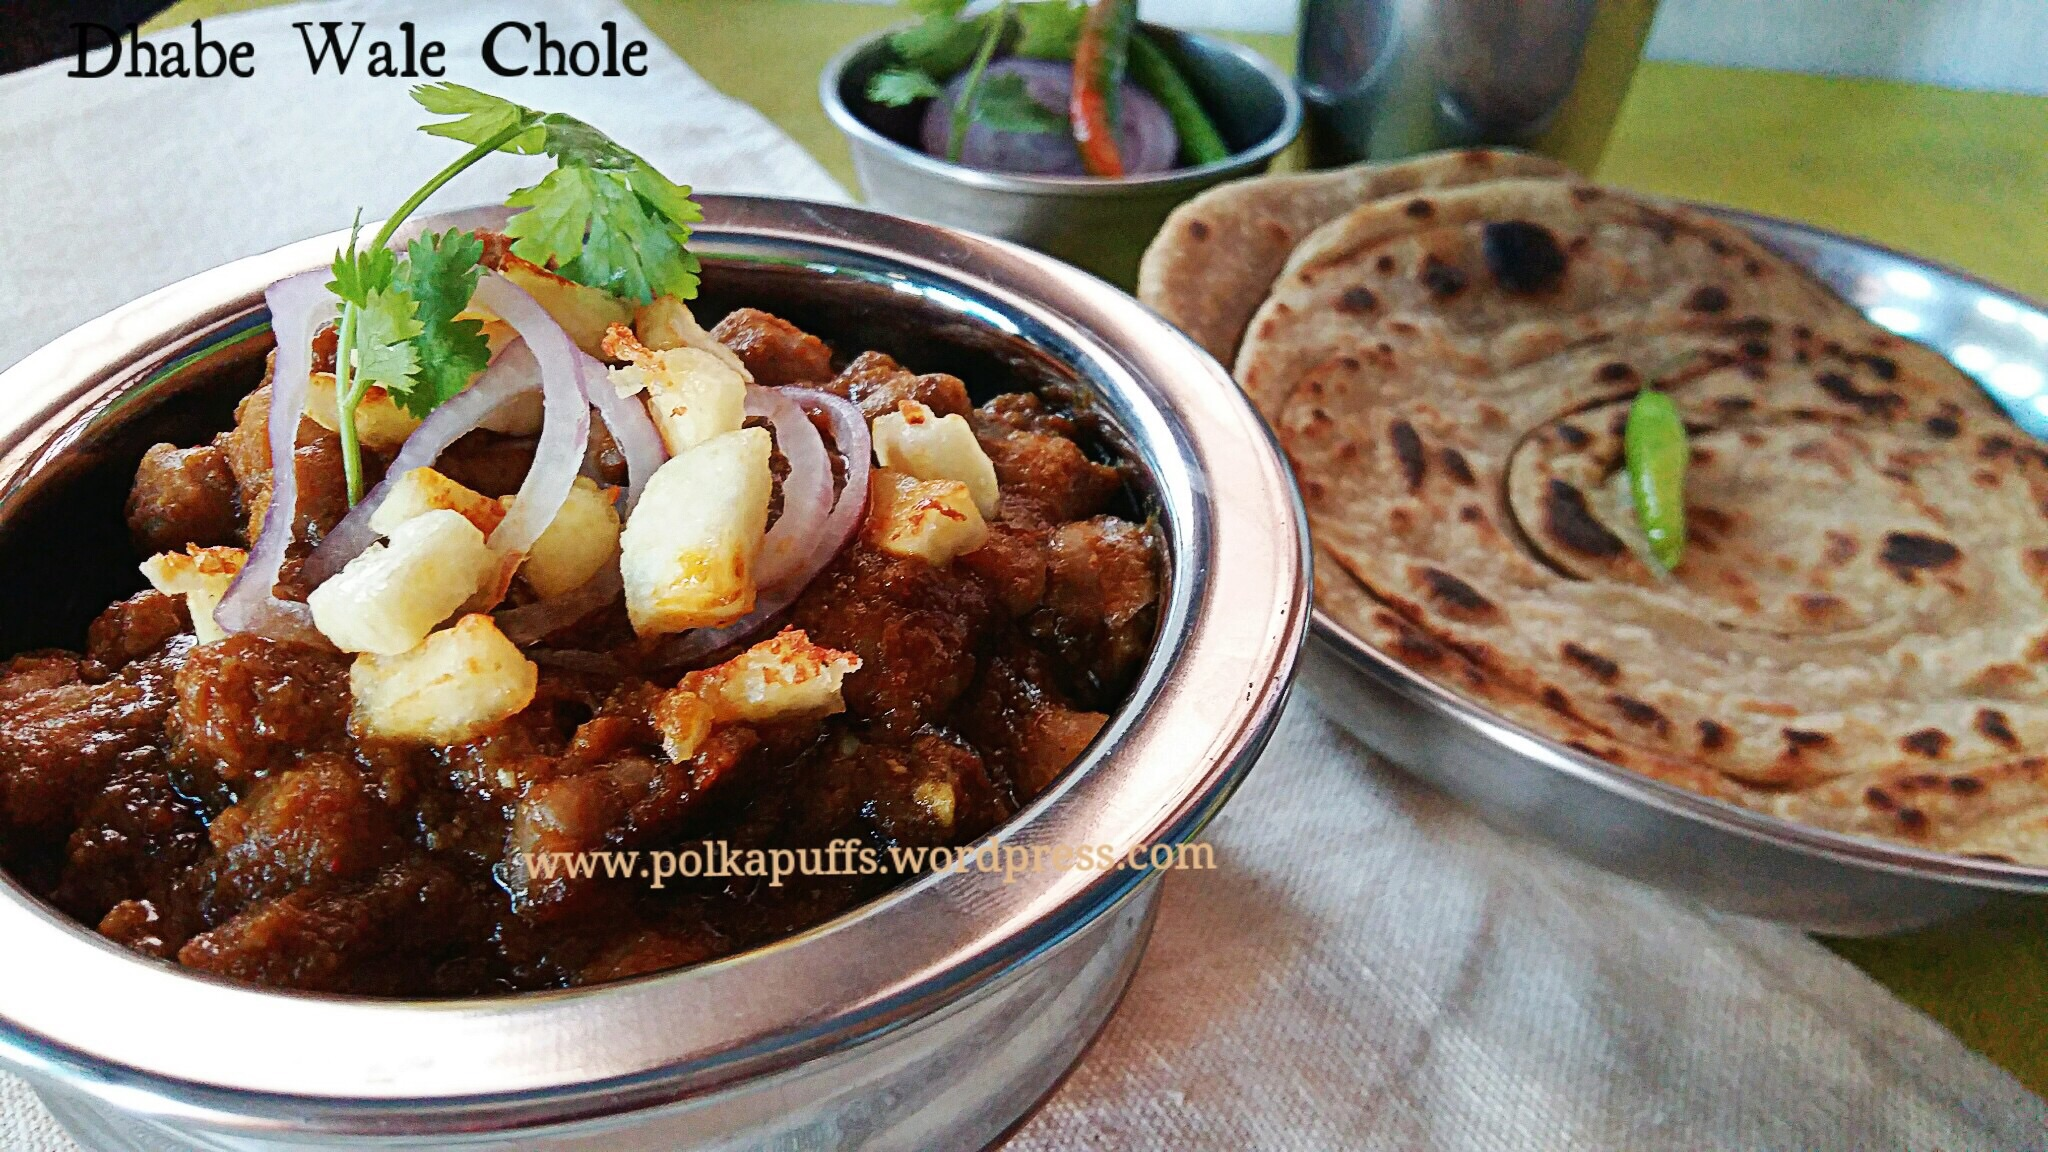 Dhabe wale chole chickpeas in a spicy indian curry chana masala how to make chana masala recipe of chole bhature polkapuffs chole recipe dhaba style chole dhaba forumfinder Images